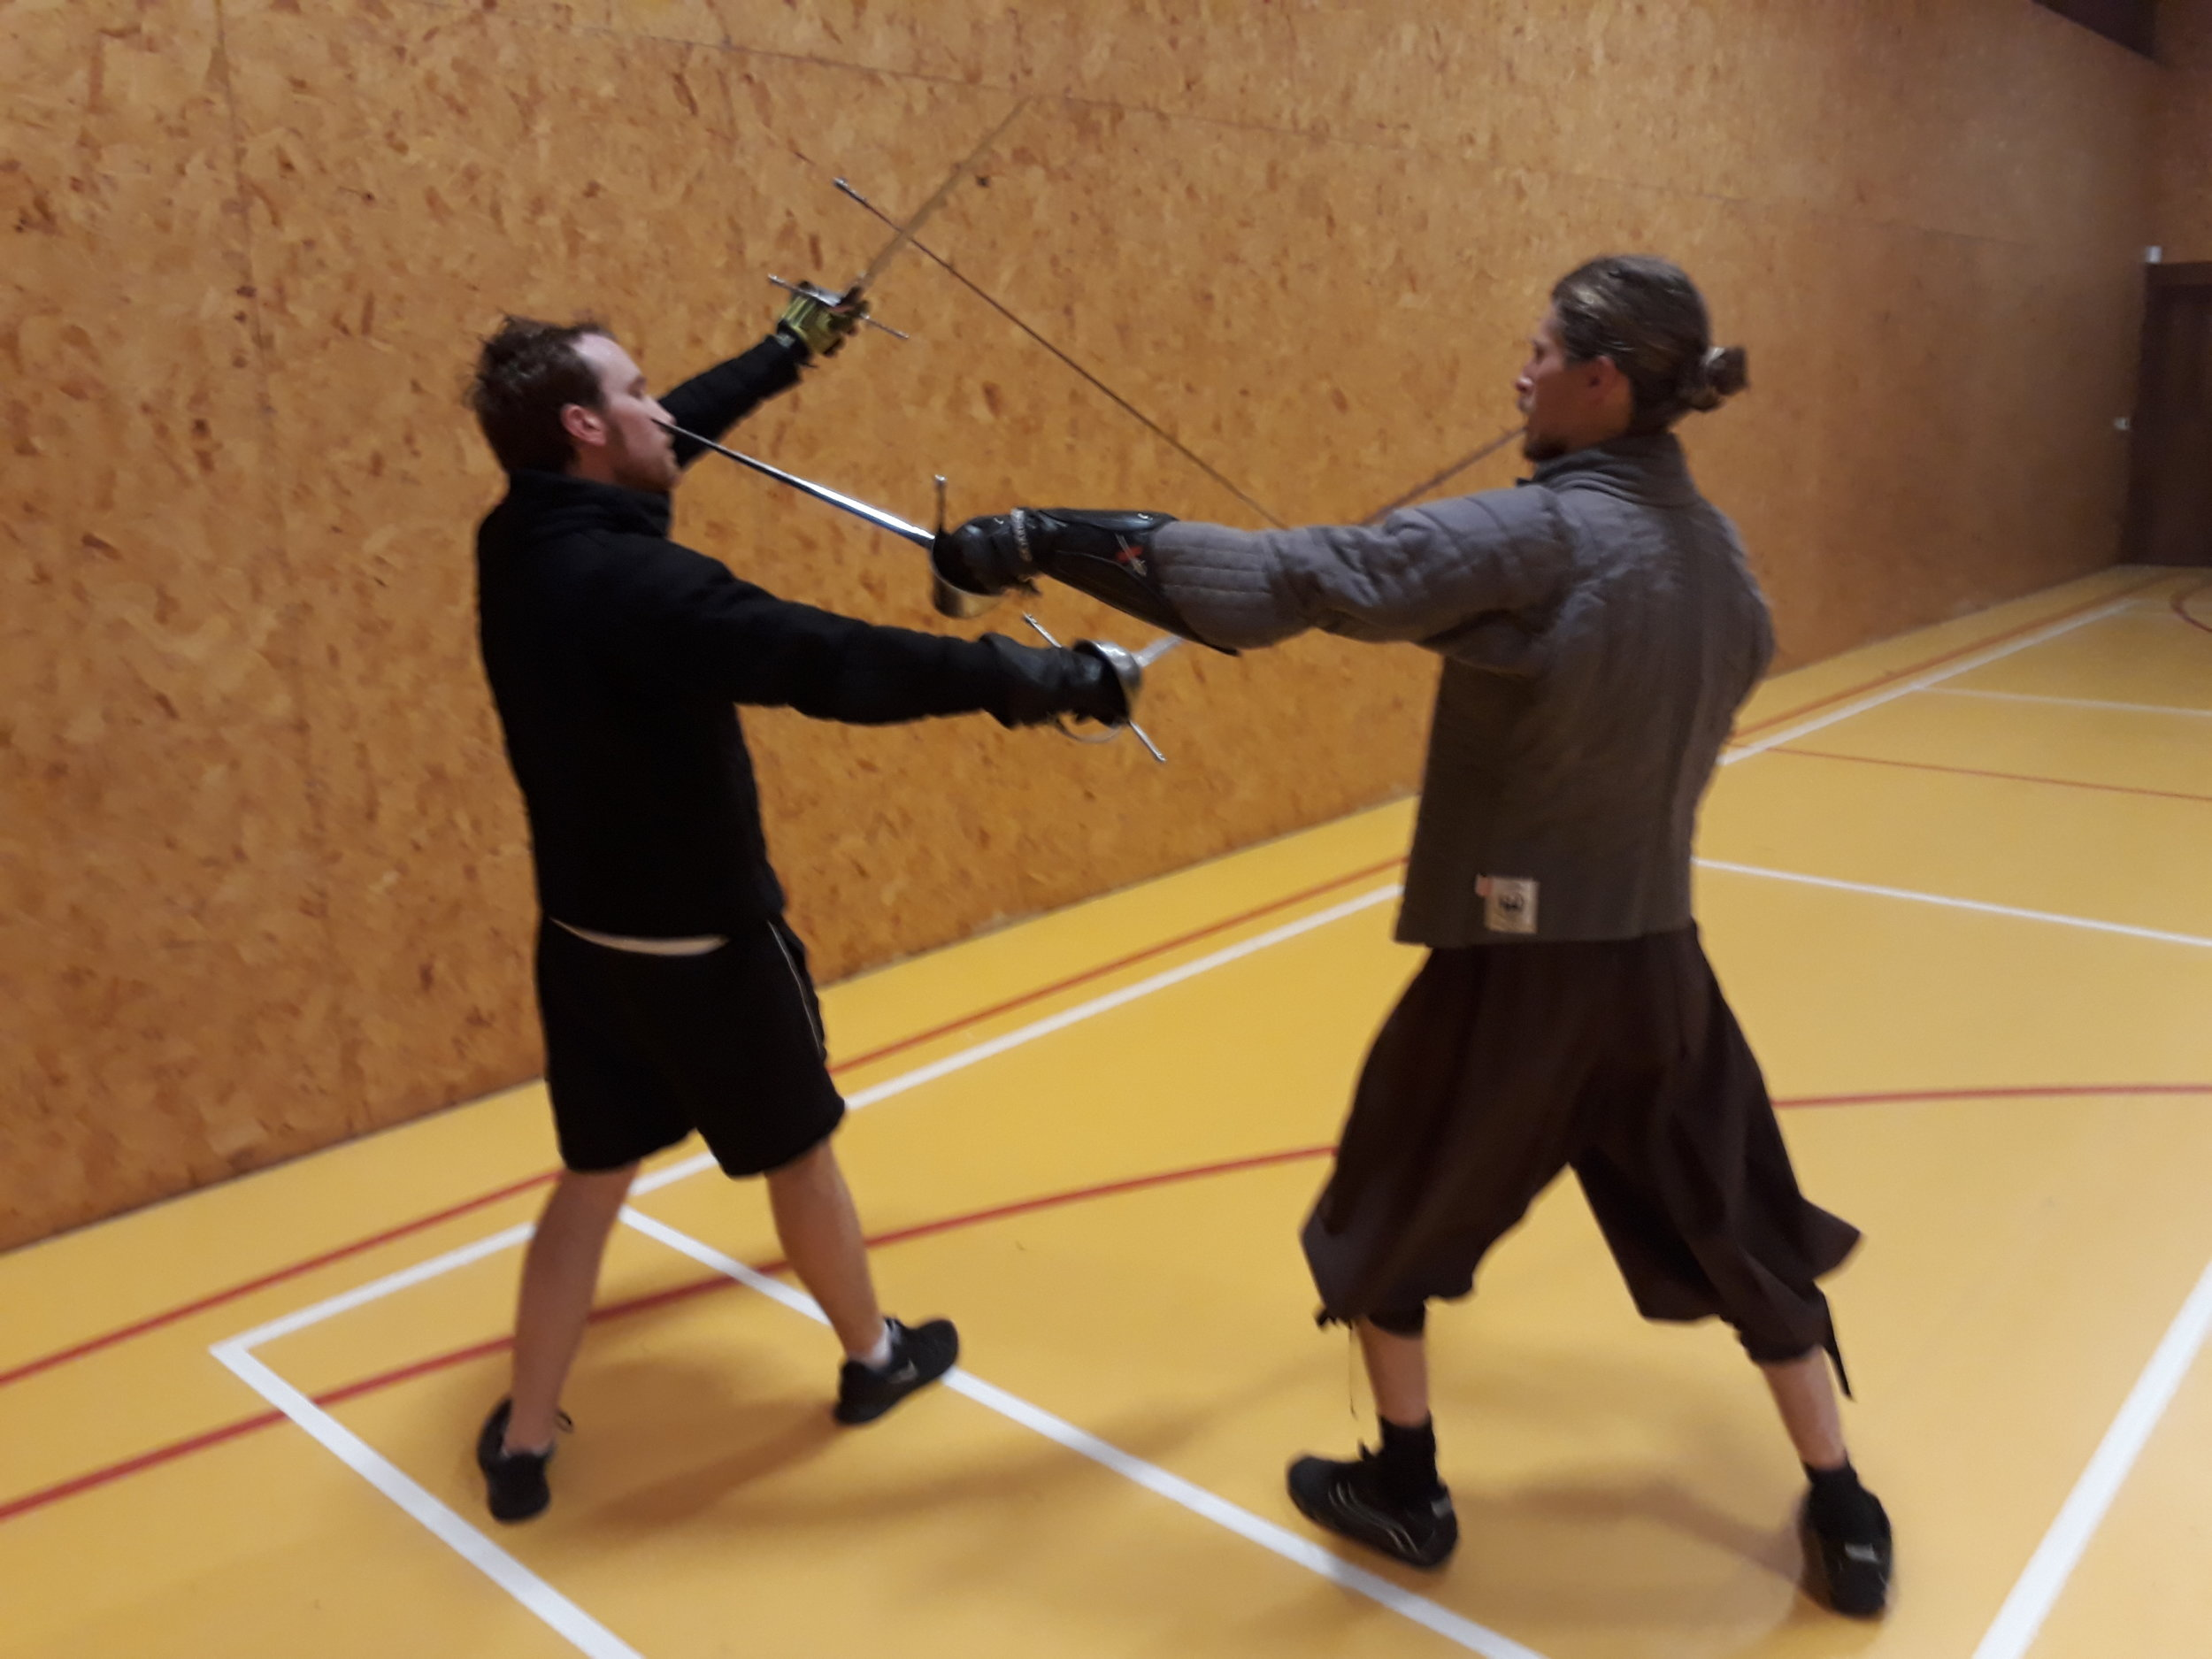 Picture H perform a curved step (circular step) with your left leg brining your dagger in and thrusting to the face or chest,underarm of the opponent..jpg